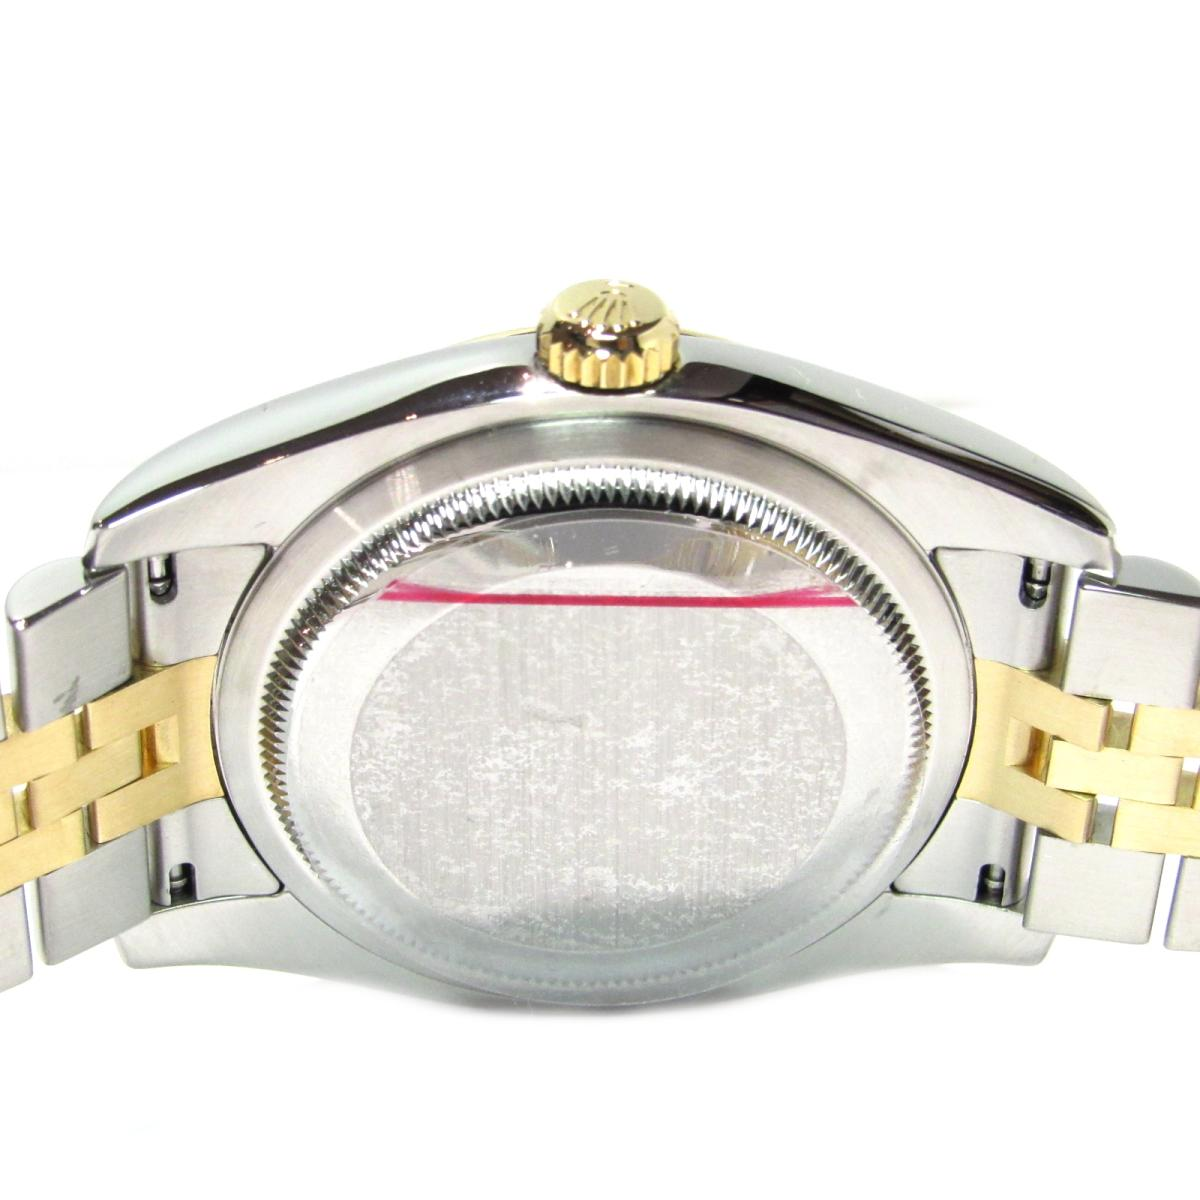 innovative design 786d2 34562 Authentic ROLEX Datejust Watch Men Stainless Steel Yellow Gold (116233G)